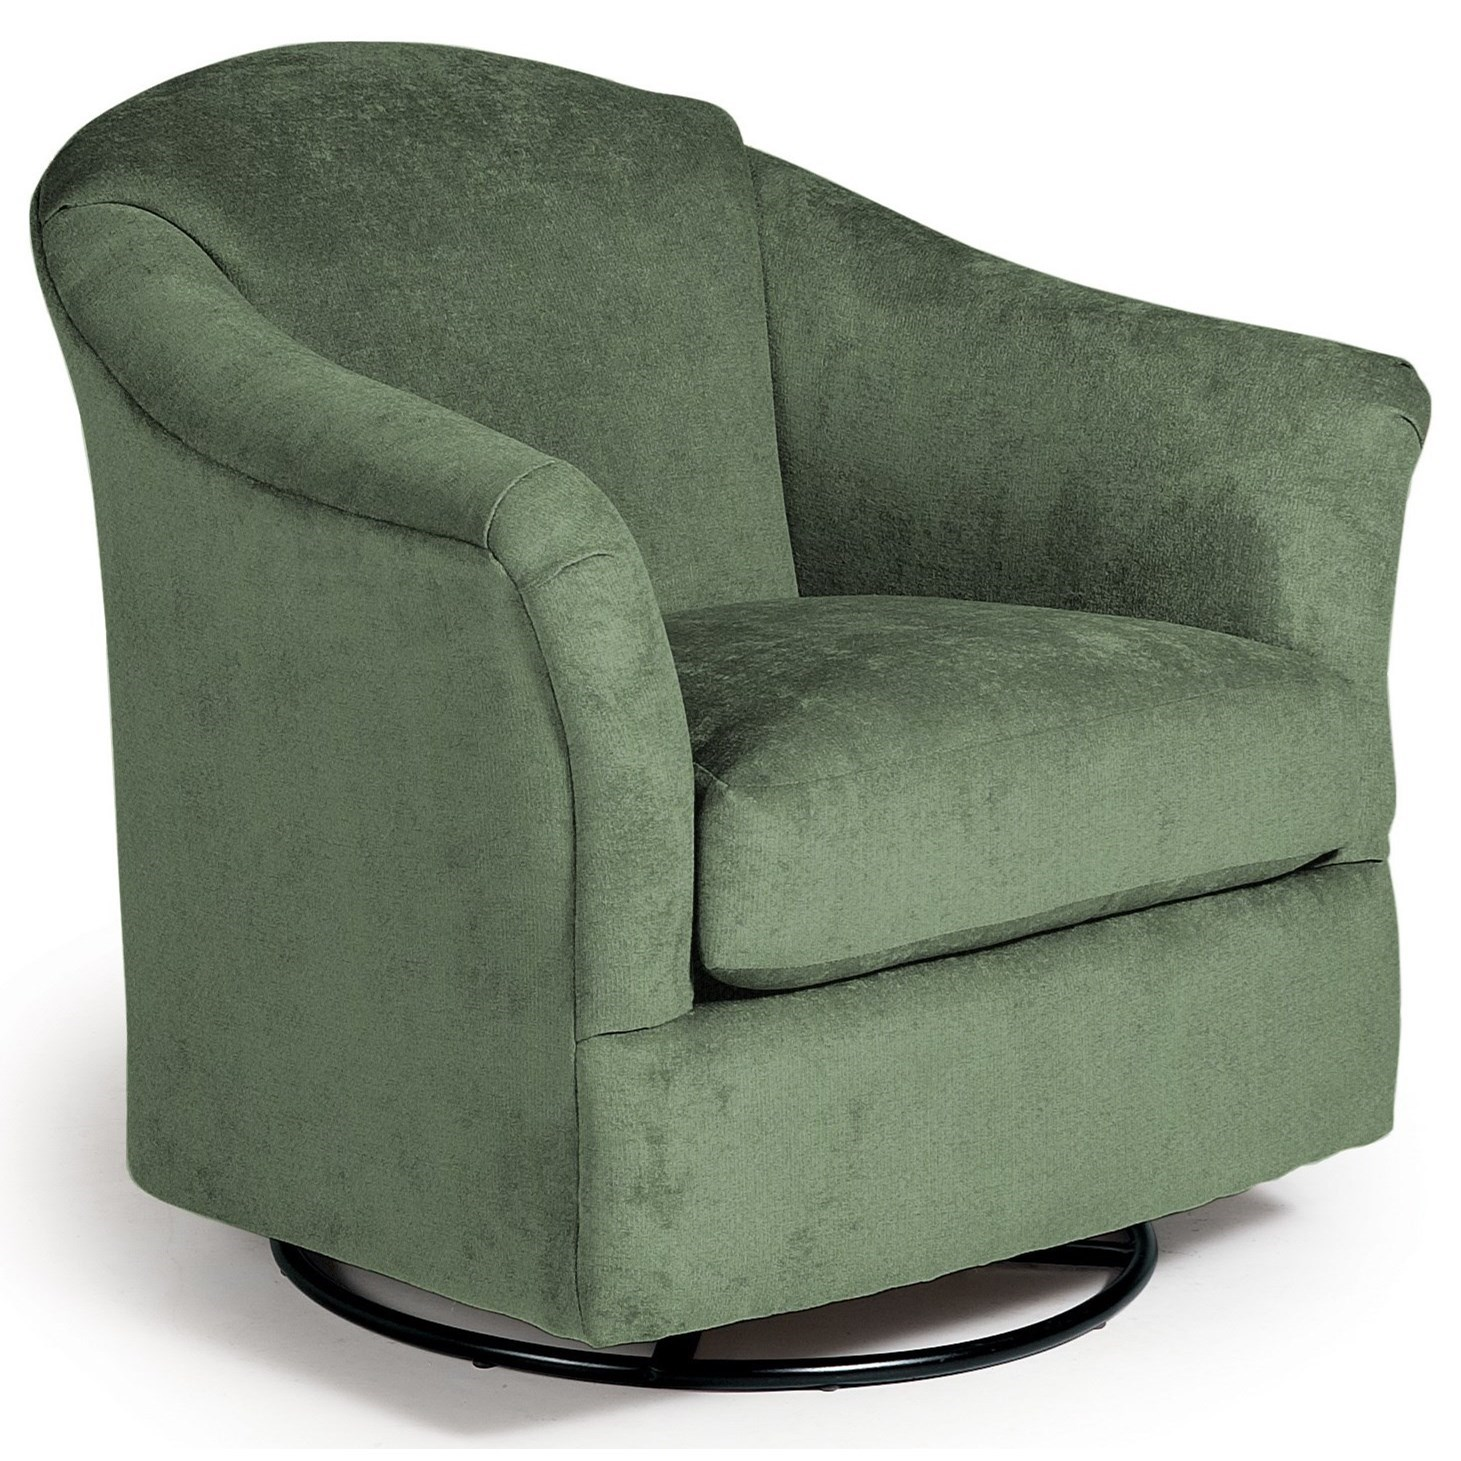 Swivel Glide Chairs Darby Swivel Glider by Best Home Furnishings at Godby Home Furnishings